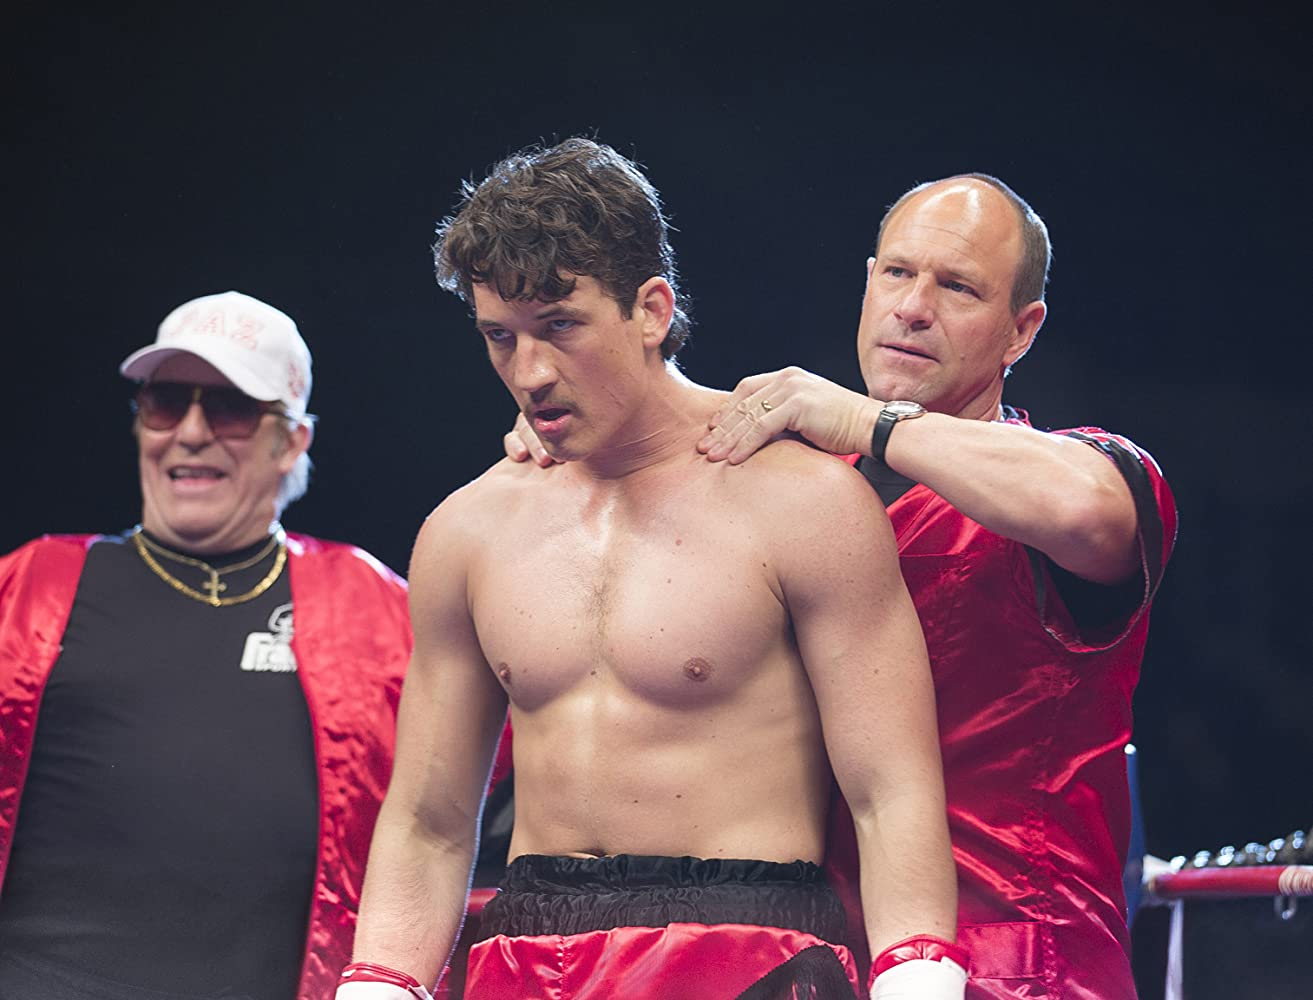 Aaron Eckhart, Ciarán Hinds, and Miles Teller in Bleed for This (2016)